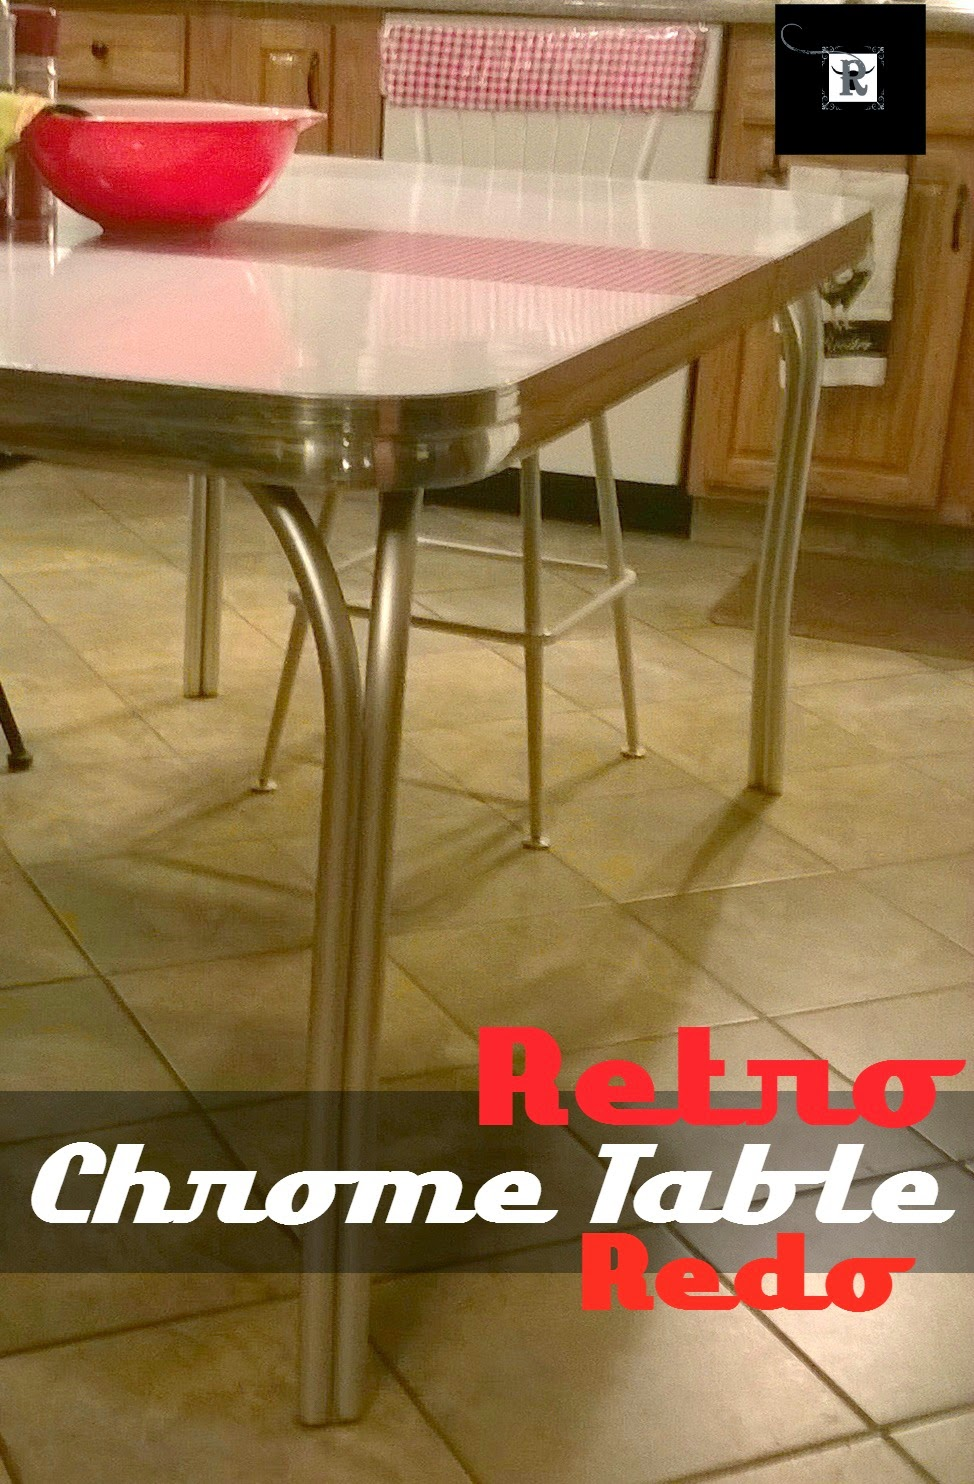 Redo It Yourself Inspirations Retro Chrome Table Redo